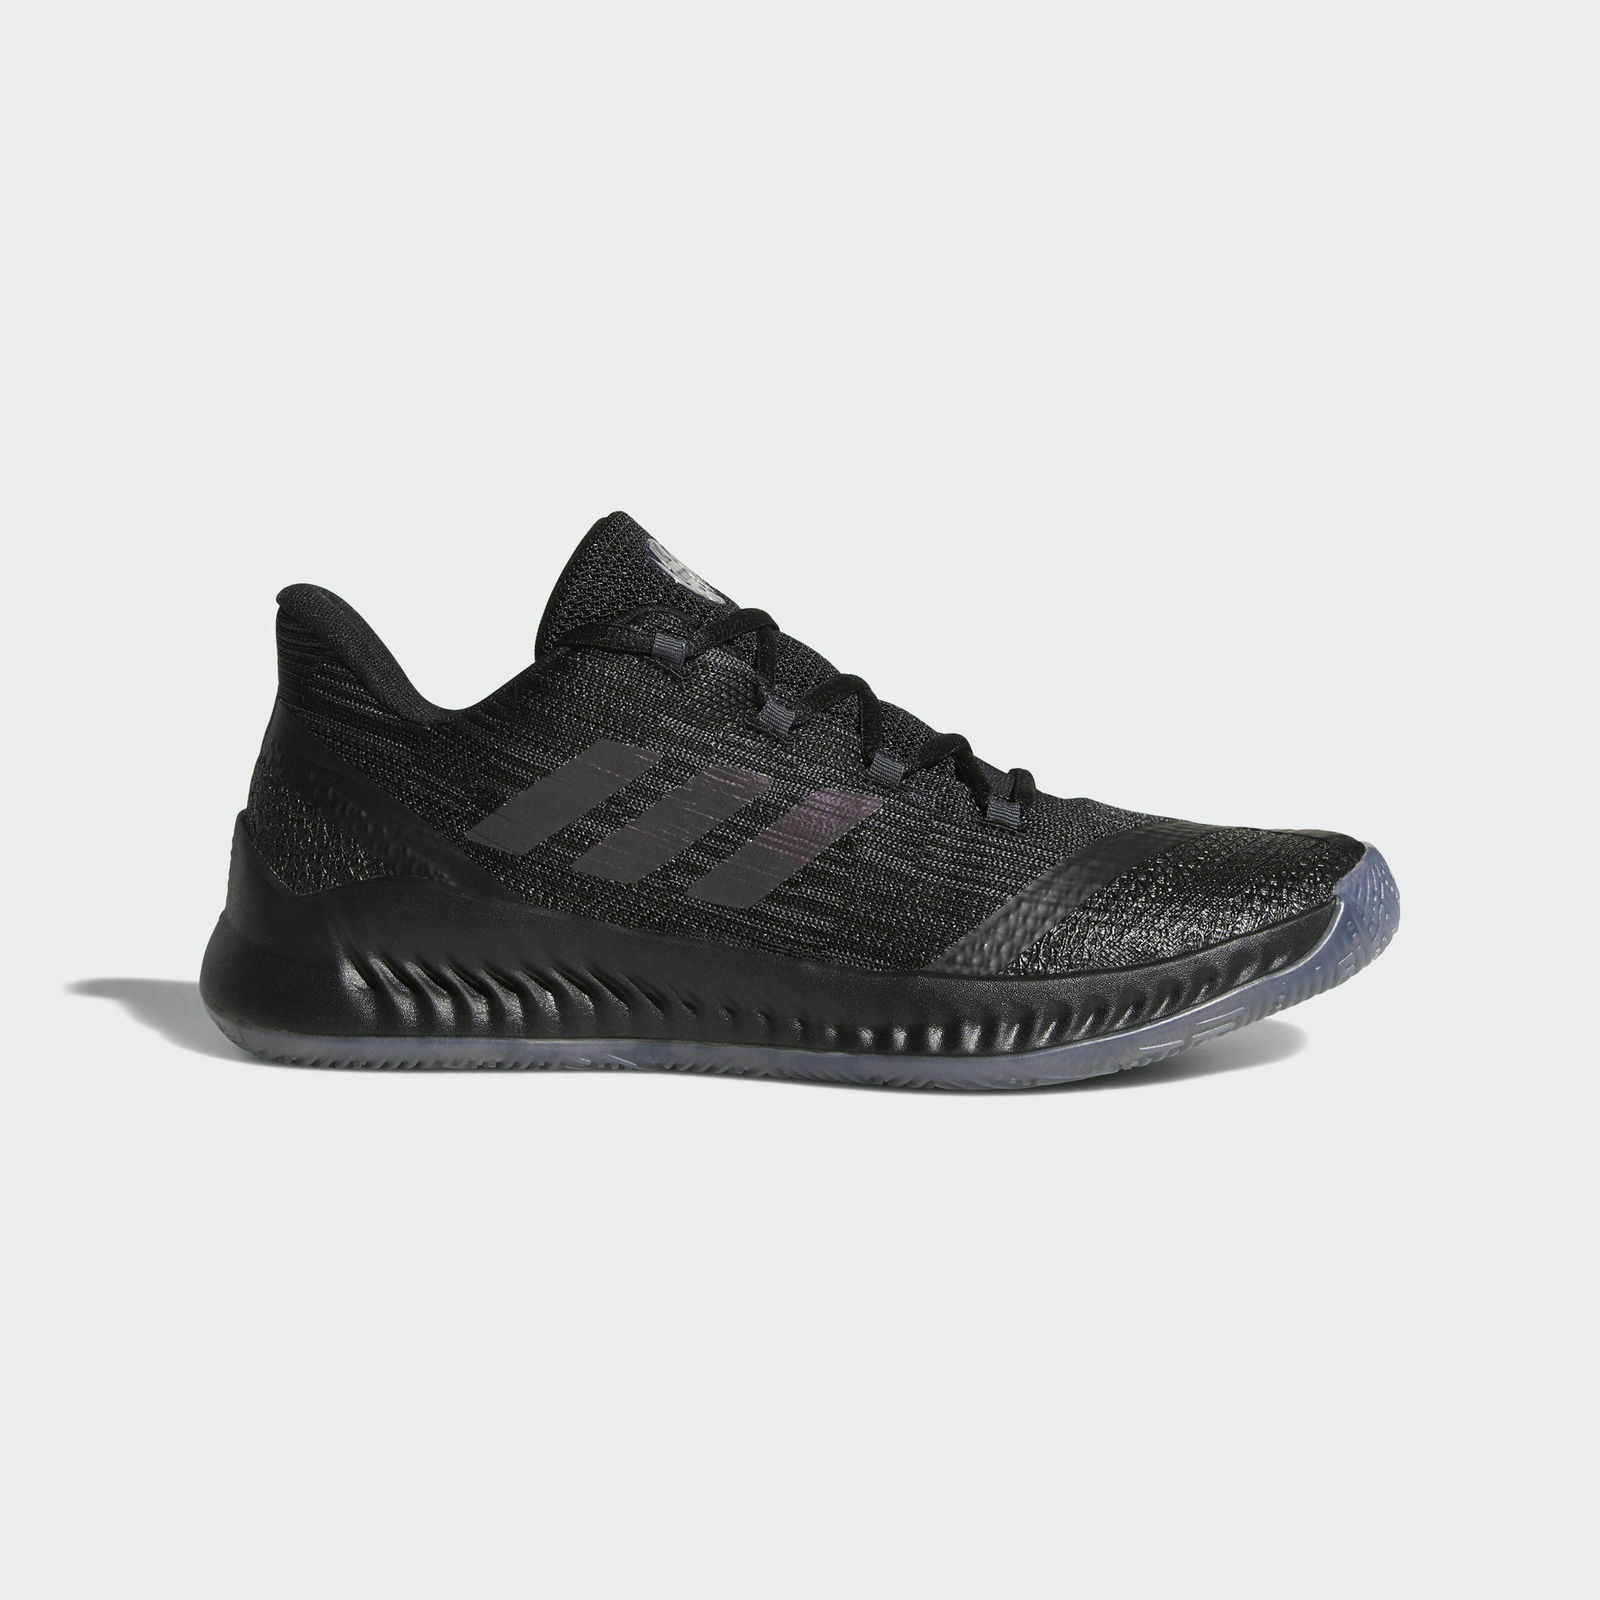 Adidas Harden B E 2 [AC7436] Men Men Men Basketball shoes James Black Solid Grey dcdb38